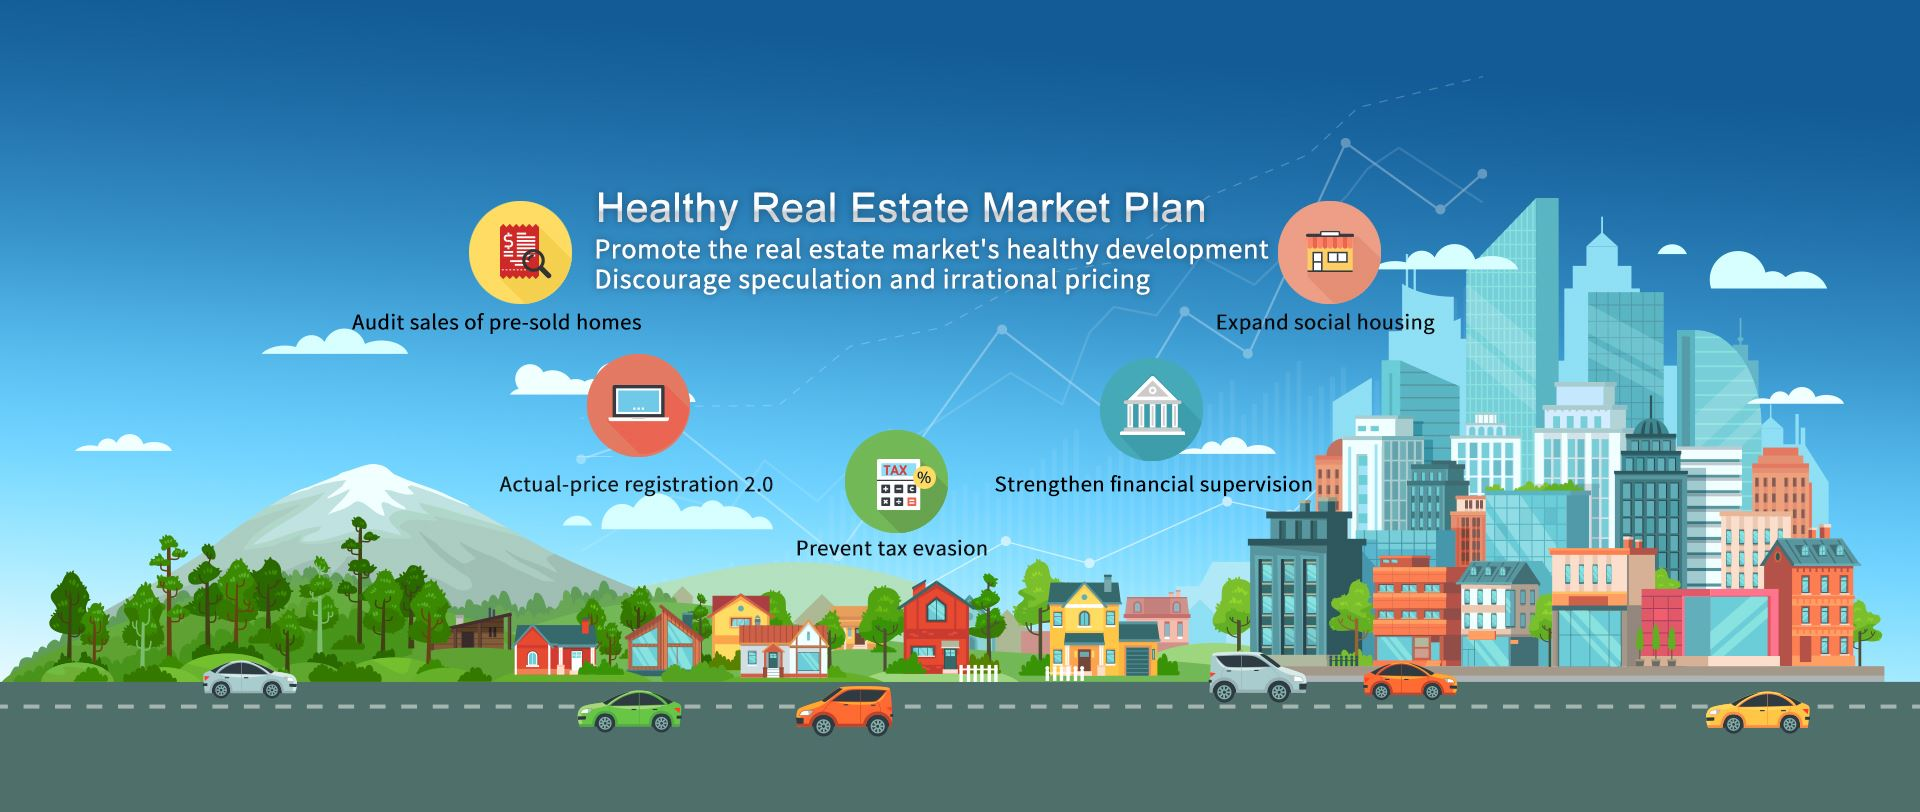 Promote the real estate market's healthy development and discourage speculation and irrational pricing